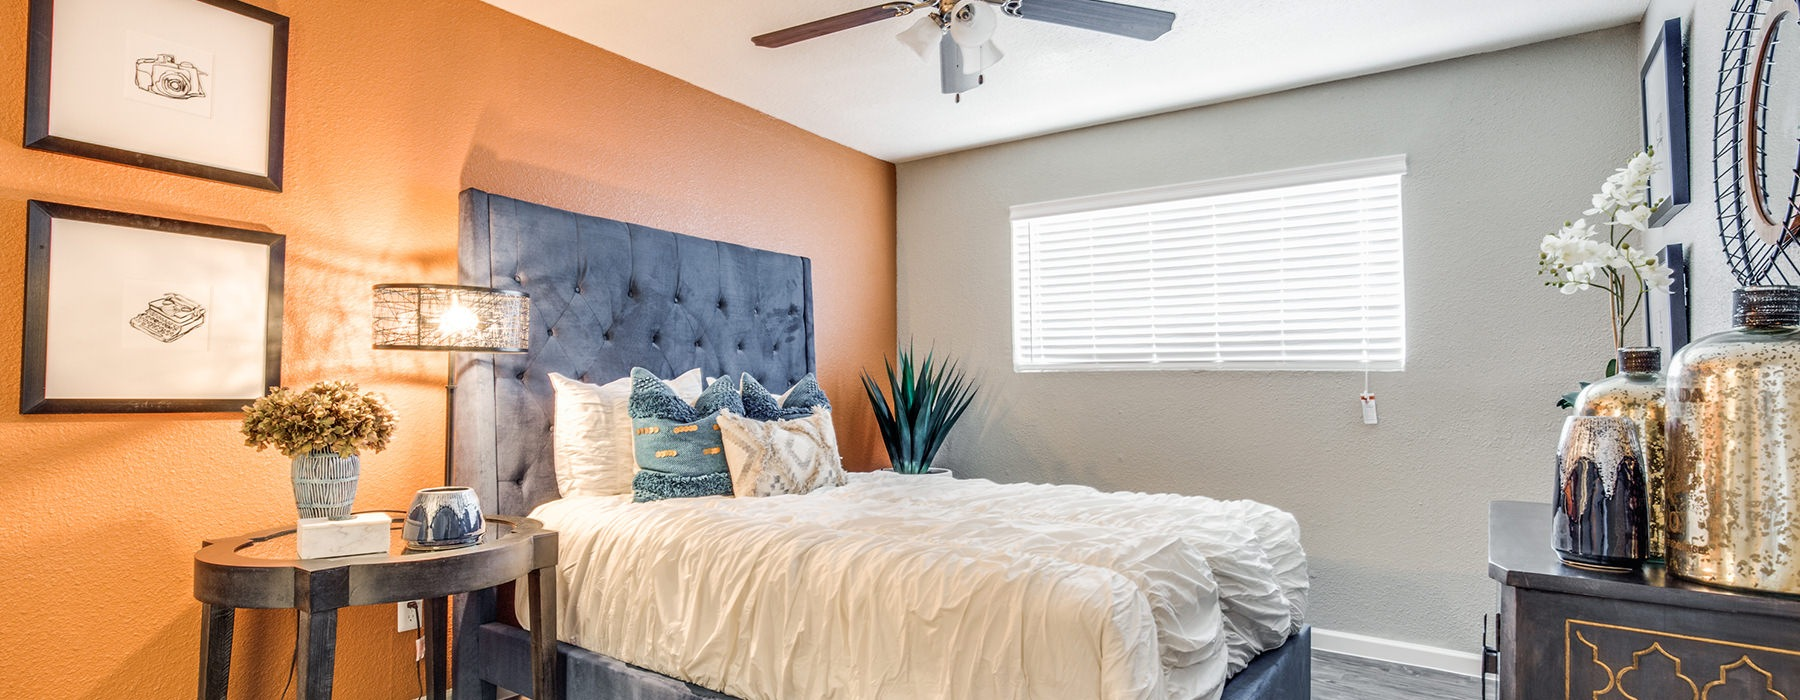 large bedroom with large windows